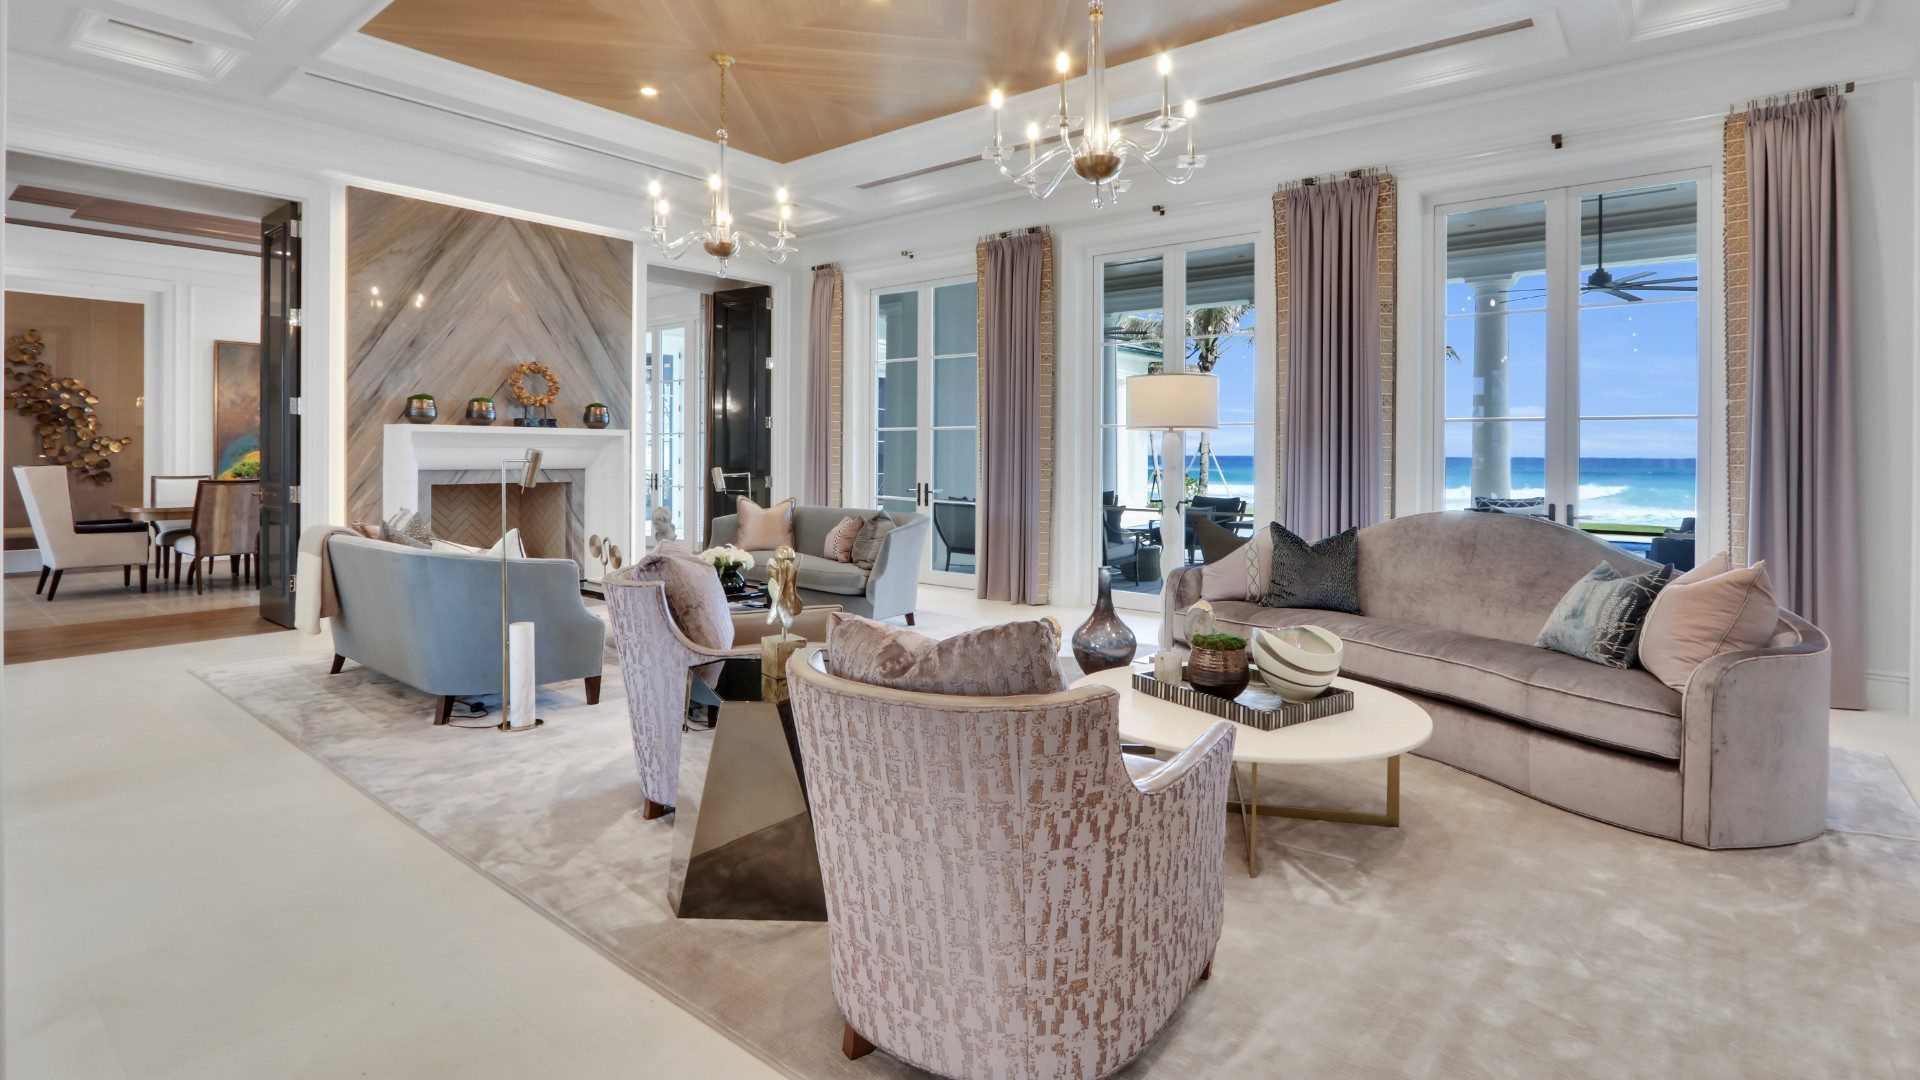 A Beautiful interior shot of a recently designed Marc-Michaels home